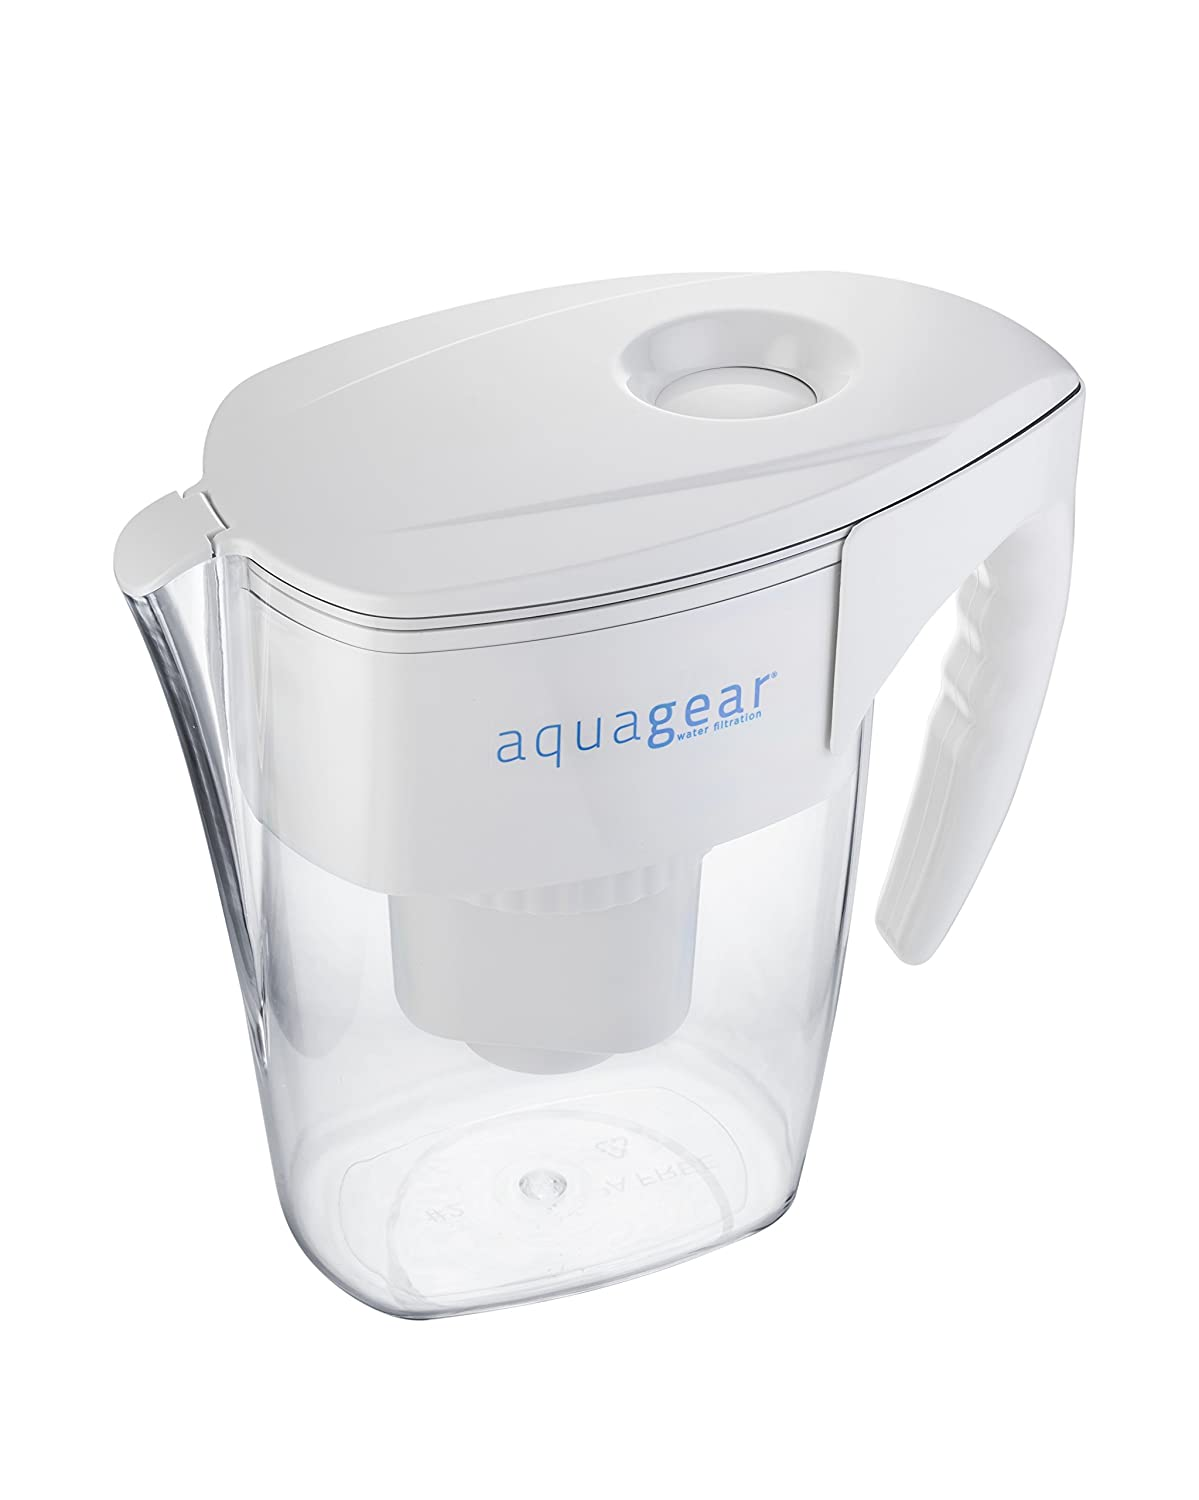 Amazon.com: Aquagear Water Filter Pitcher   Fluoride, Lead, Chloramine,  Chromium 6 Filter   BPA Free, Clear: Kitchen U0026 Dining